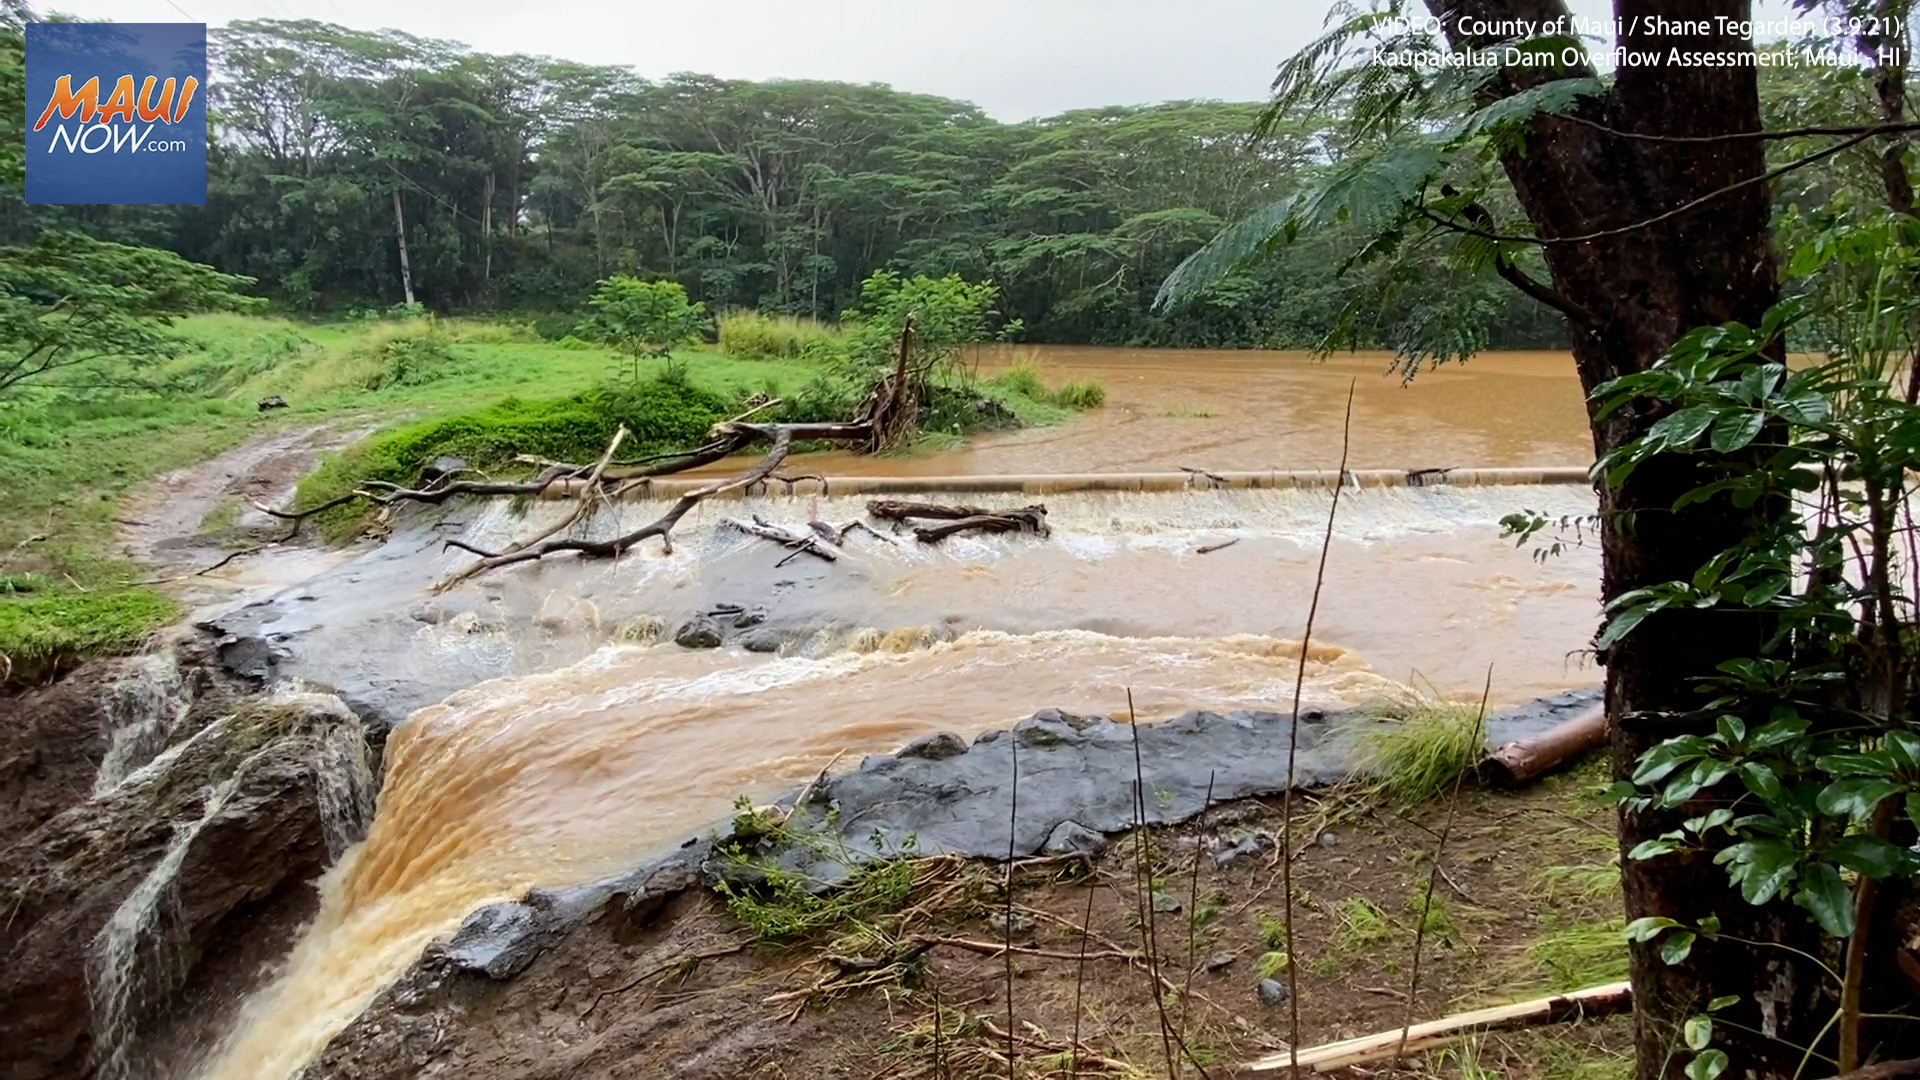 """Maui Mayor Assesses Haʻikū Damage in Daylight: Reminded of """"Sheer Power of Fast-Moving Water"""""""